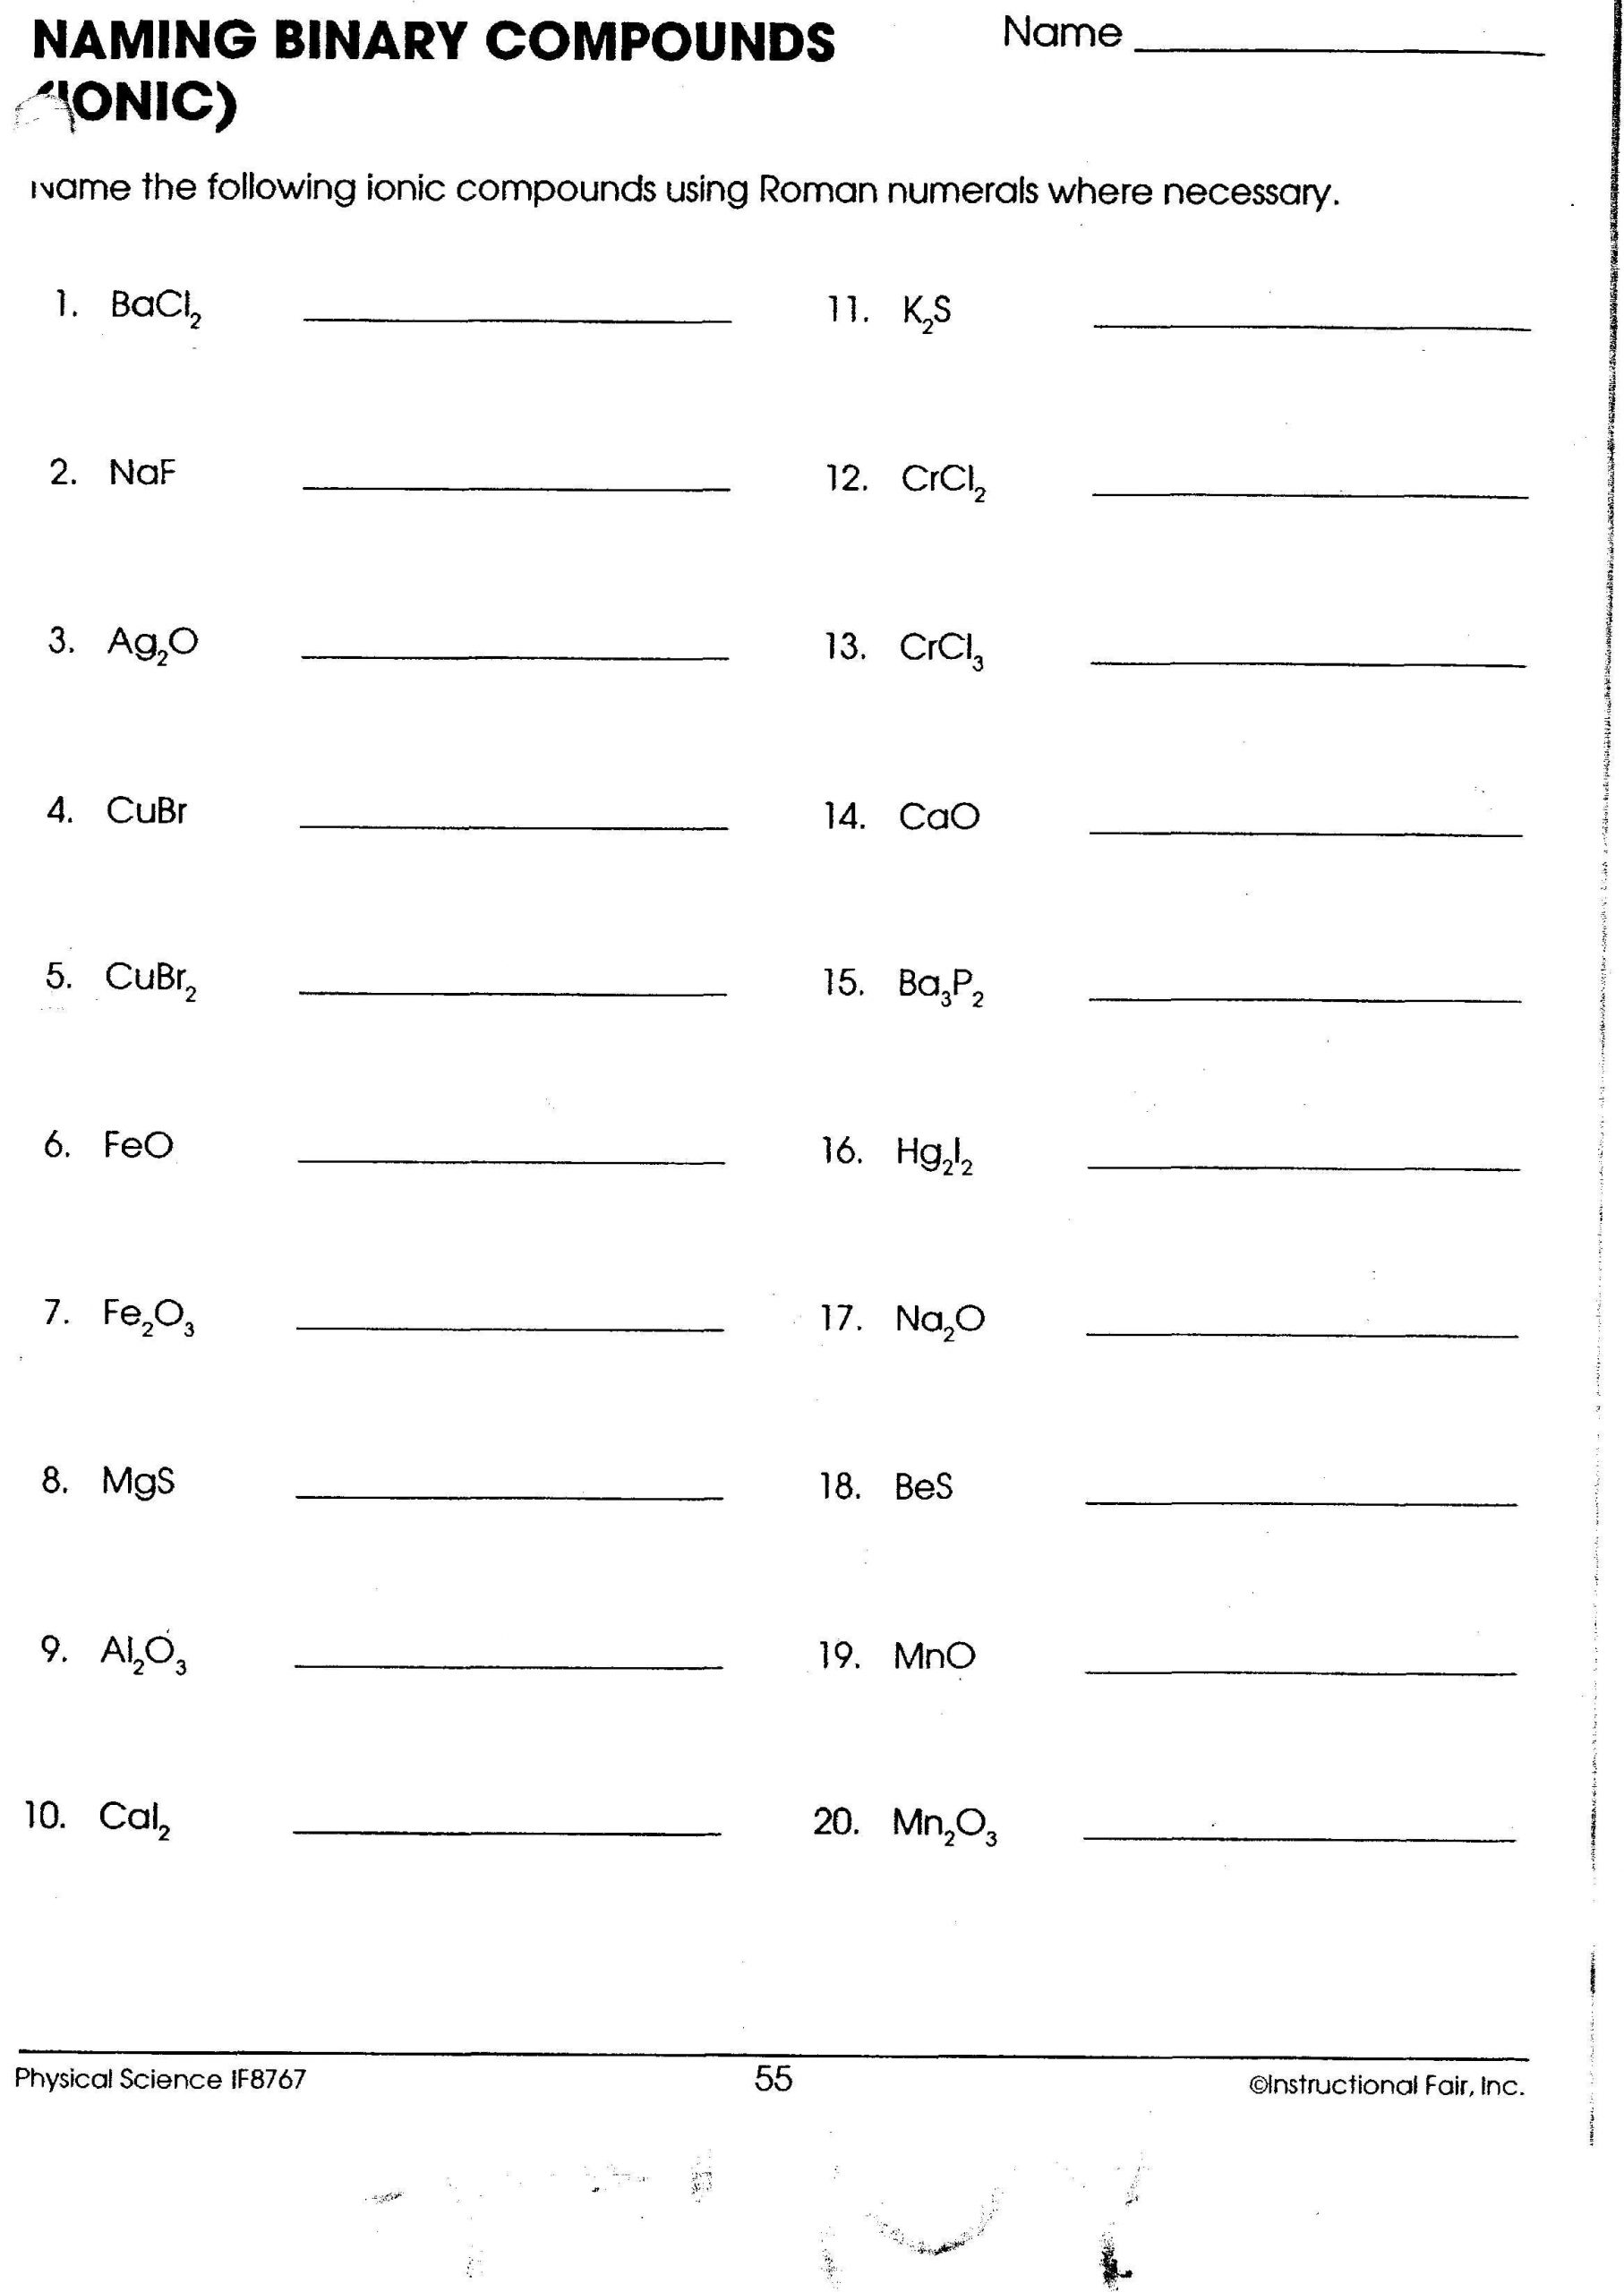 30 Naming Chemical Compounds Worksheet Answers